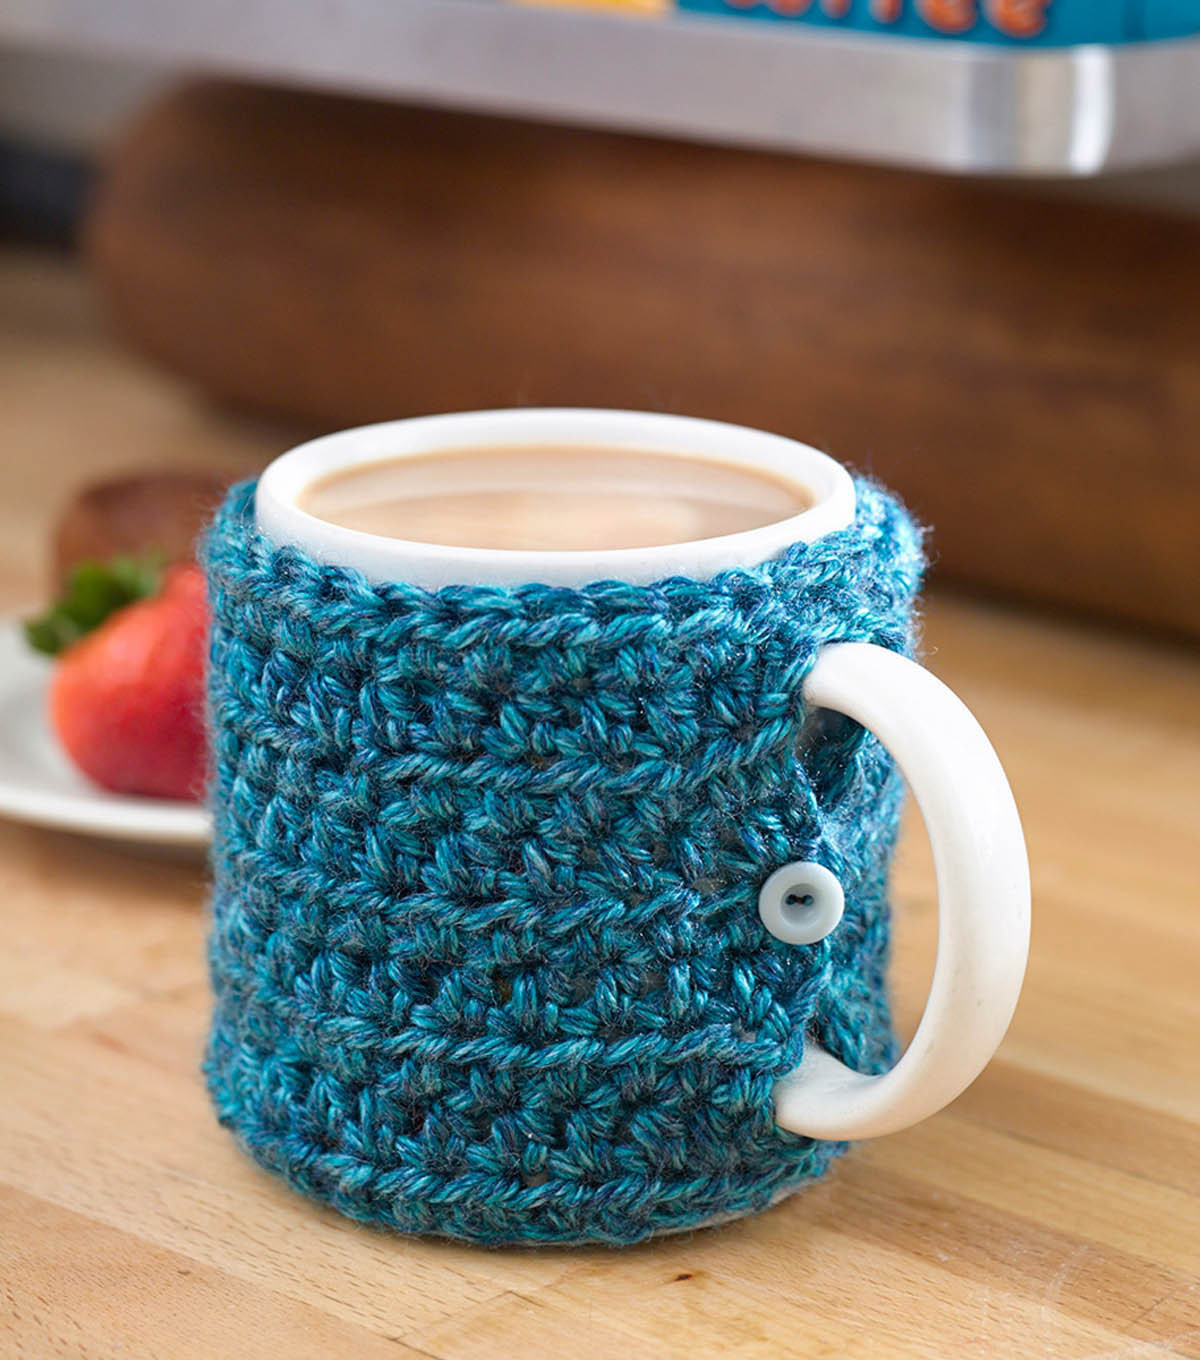 Crochet Coffee Cup Cozy Best Of Craftdrawer Crafts Free Easy to Crochet Mug Cozy Patterns Of Crochet Coffee Cup Cozy Inspirational Crochet Class Beginning Crochet Sparkleez Crystles